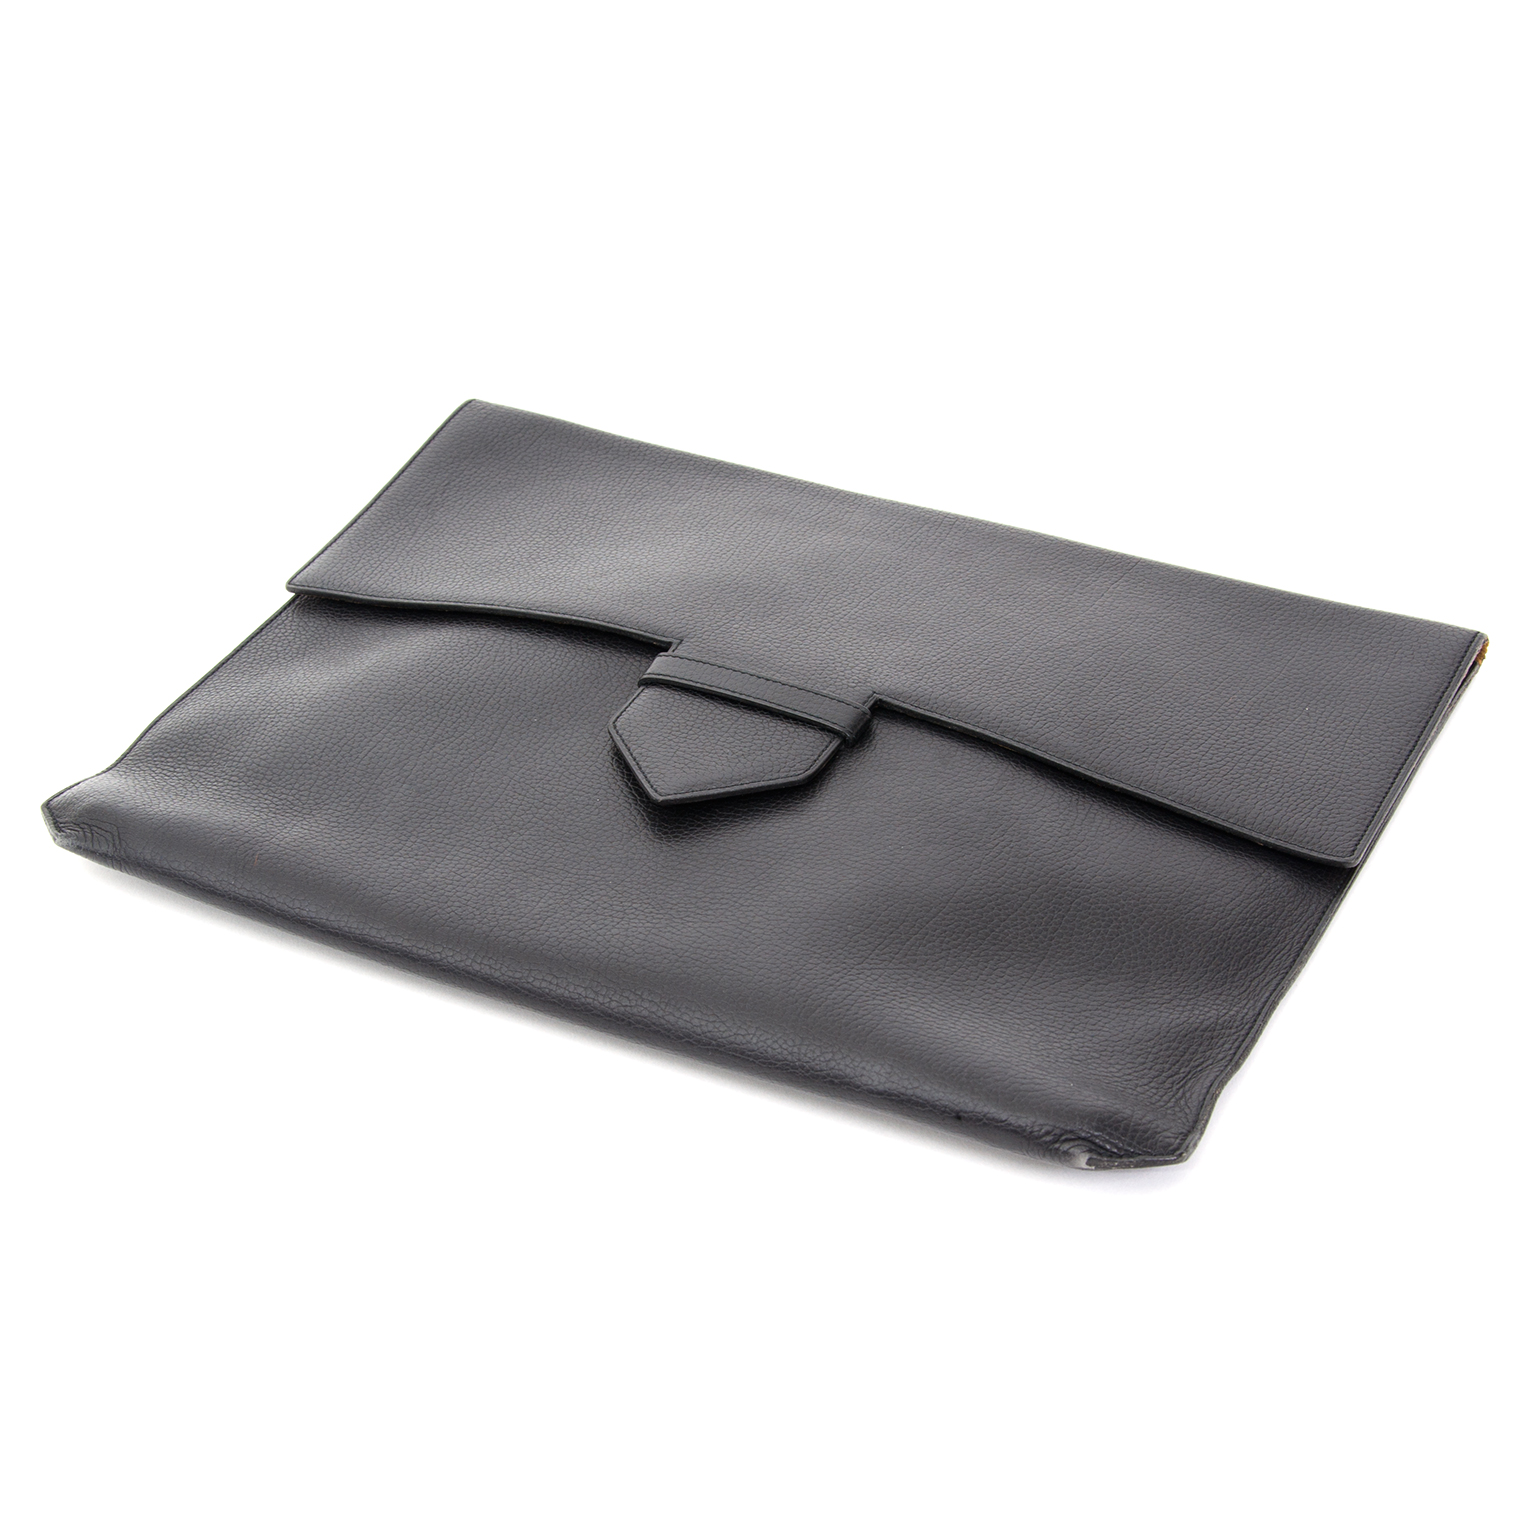 replica hermes purses - Clutch - Bags Your go-to shopping place for vintage & pre-loved ...